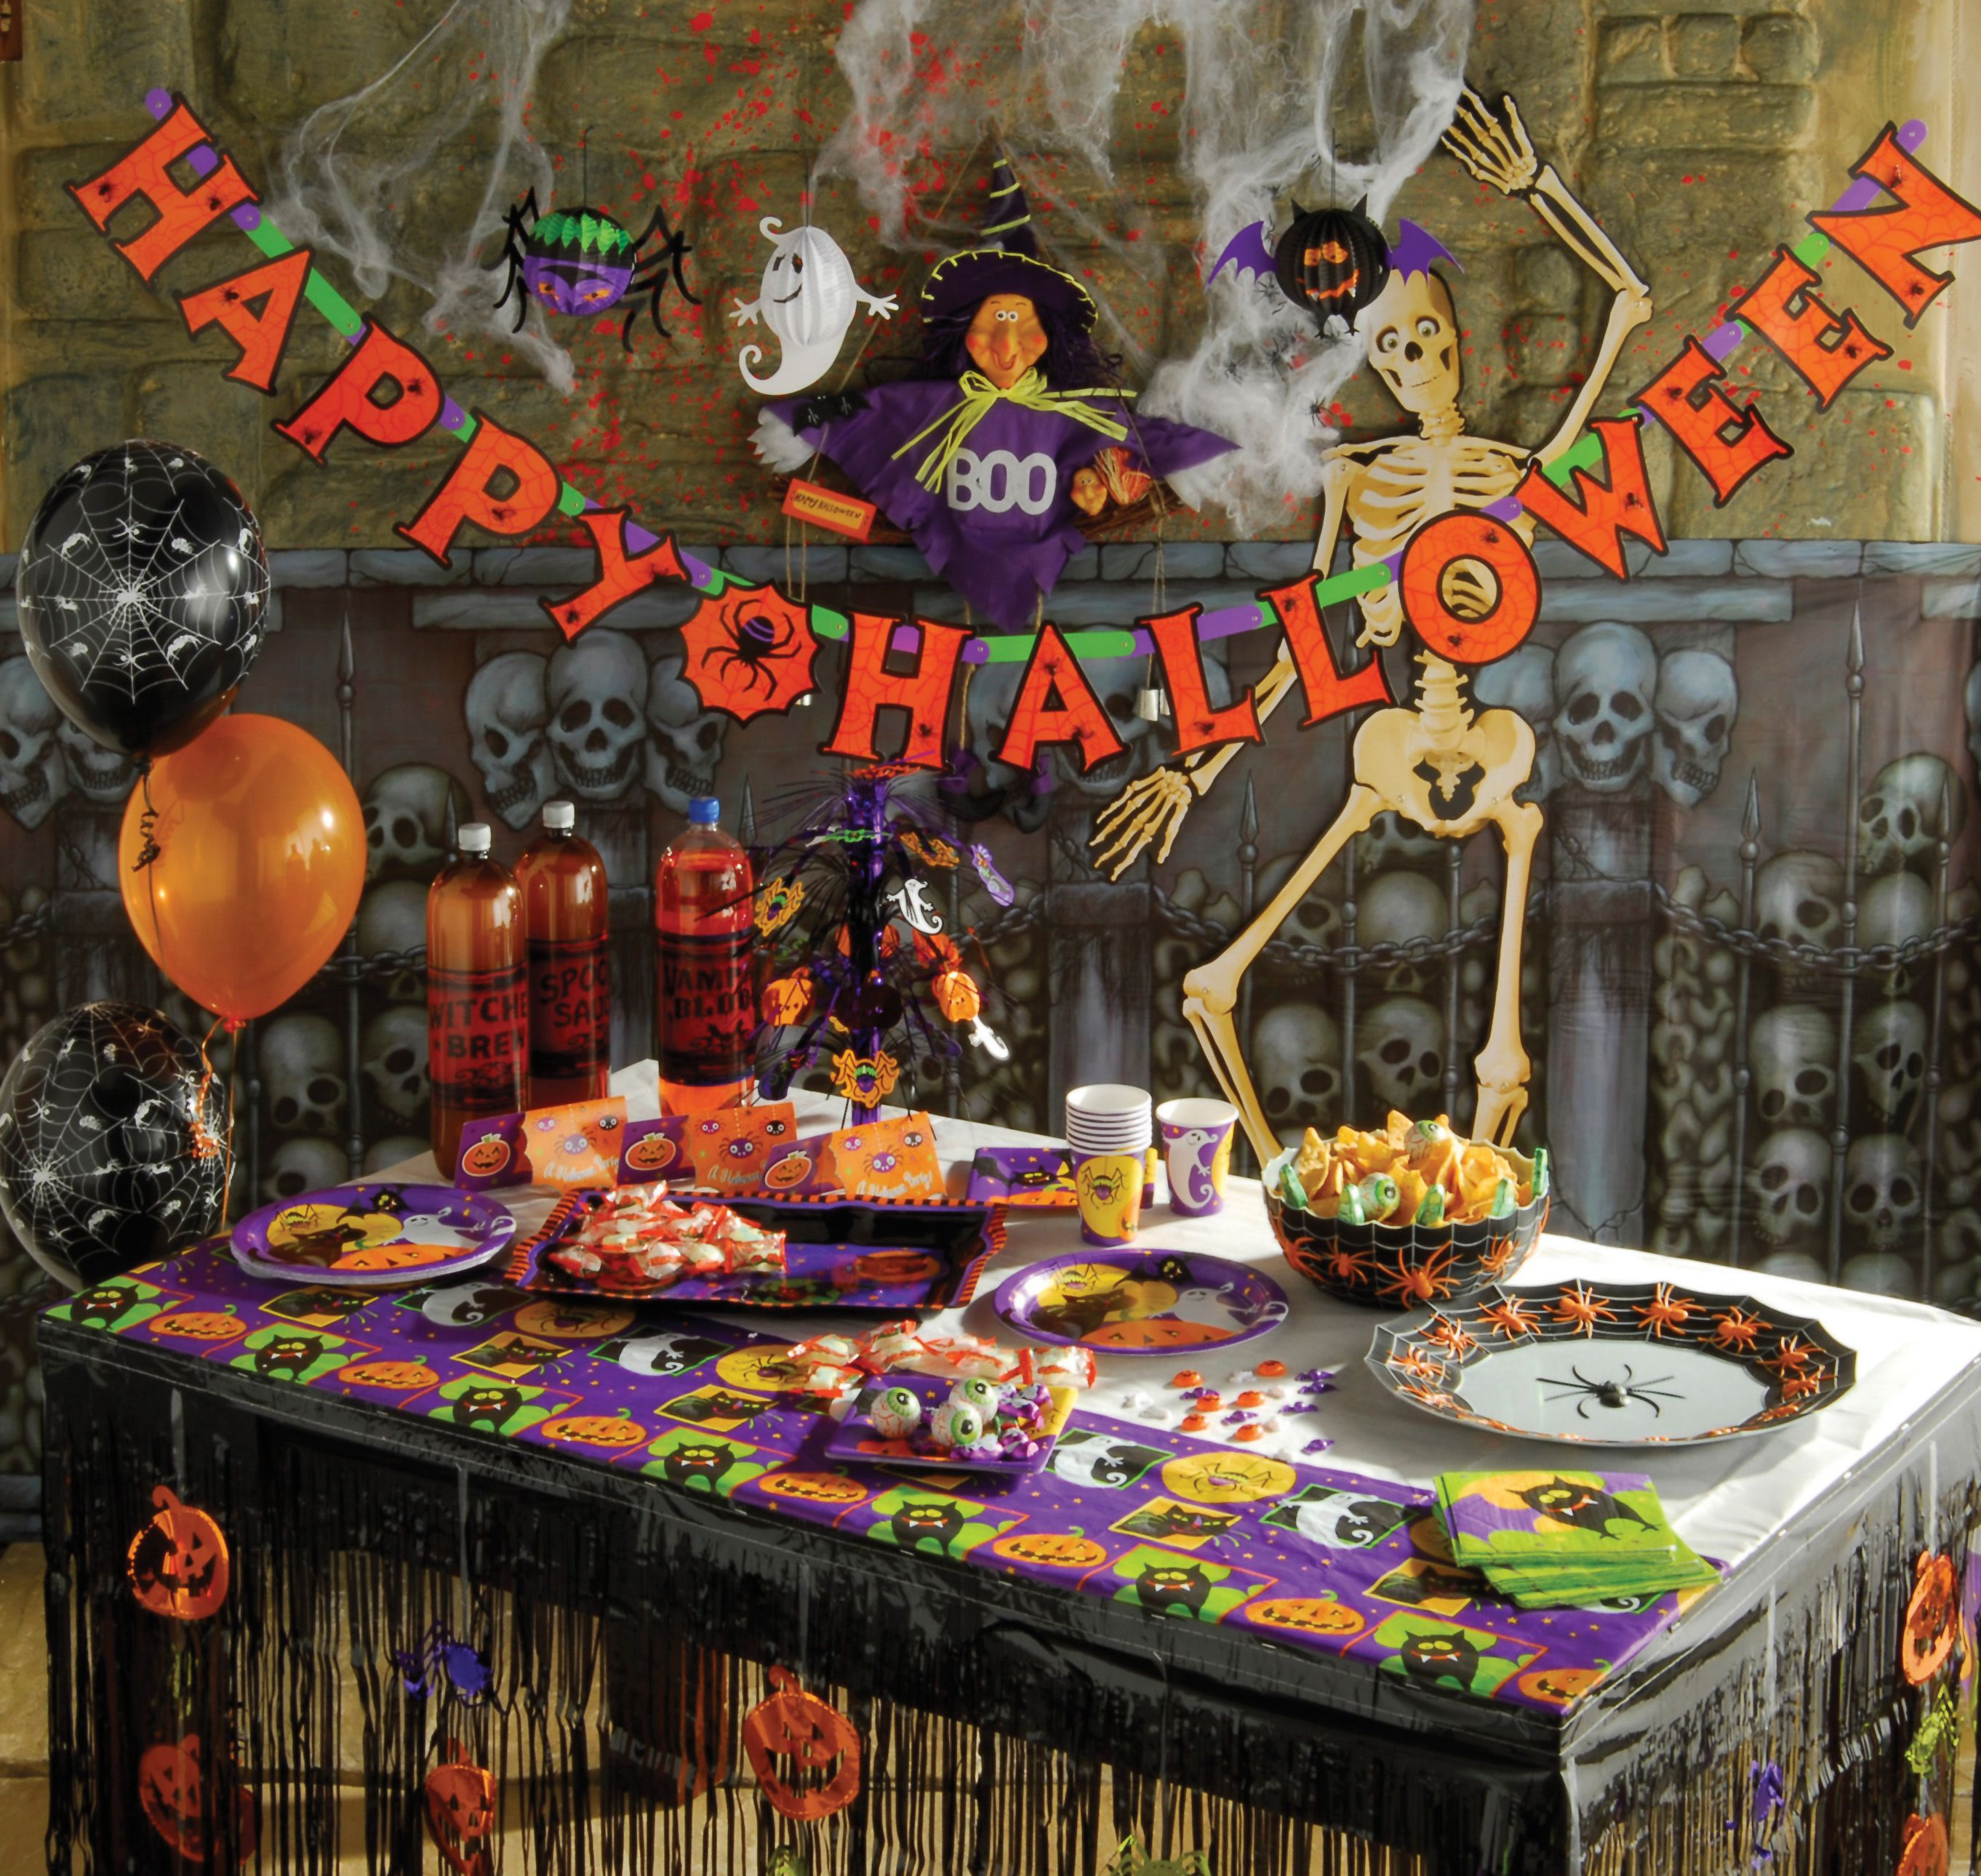 Halloween Home Decor Ideas: 20+ Classic Halloween Decorations Ideas